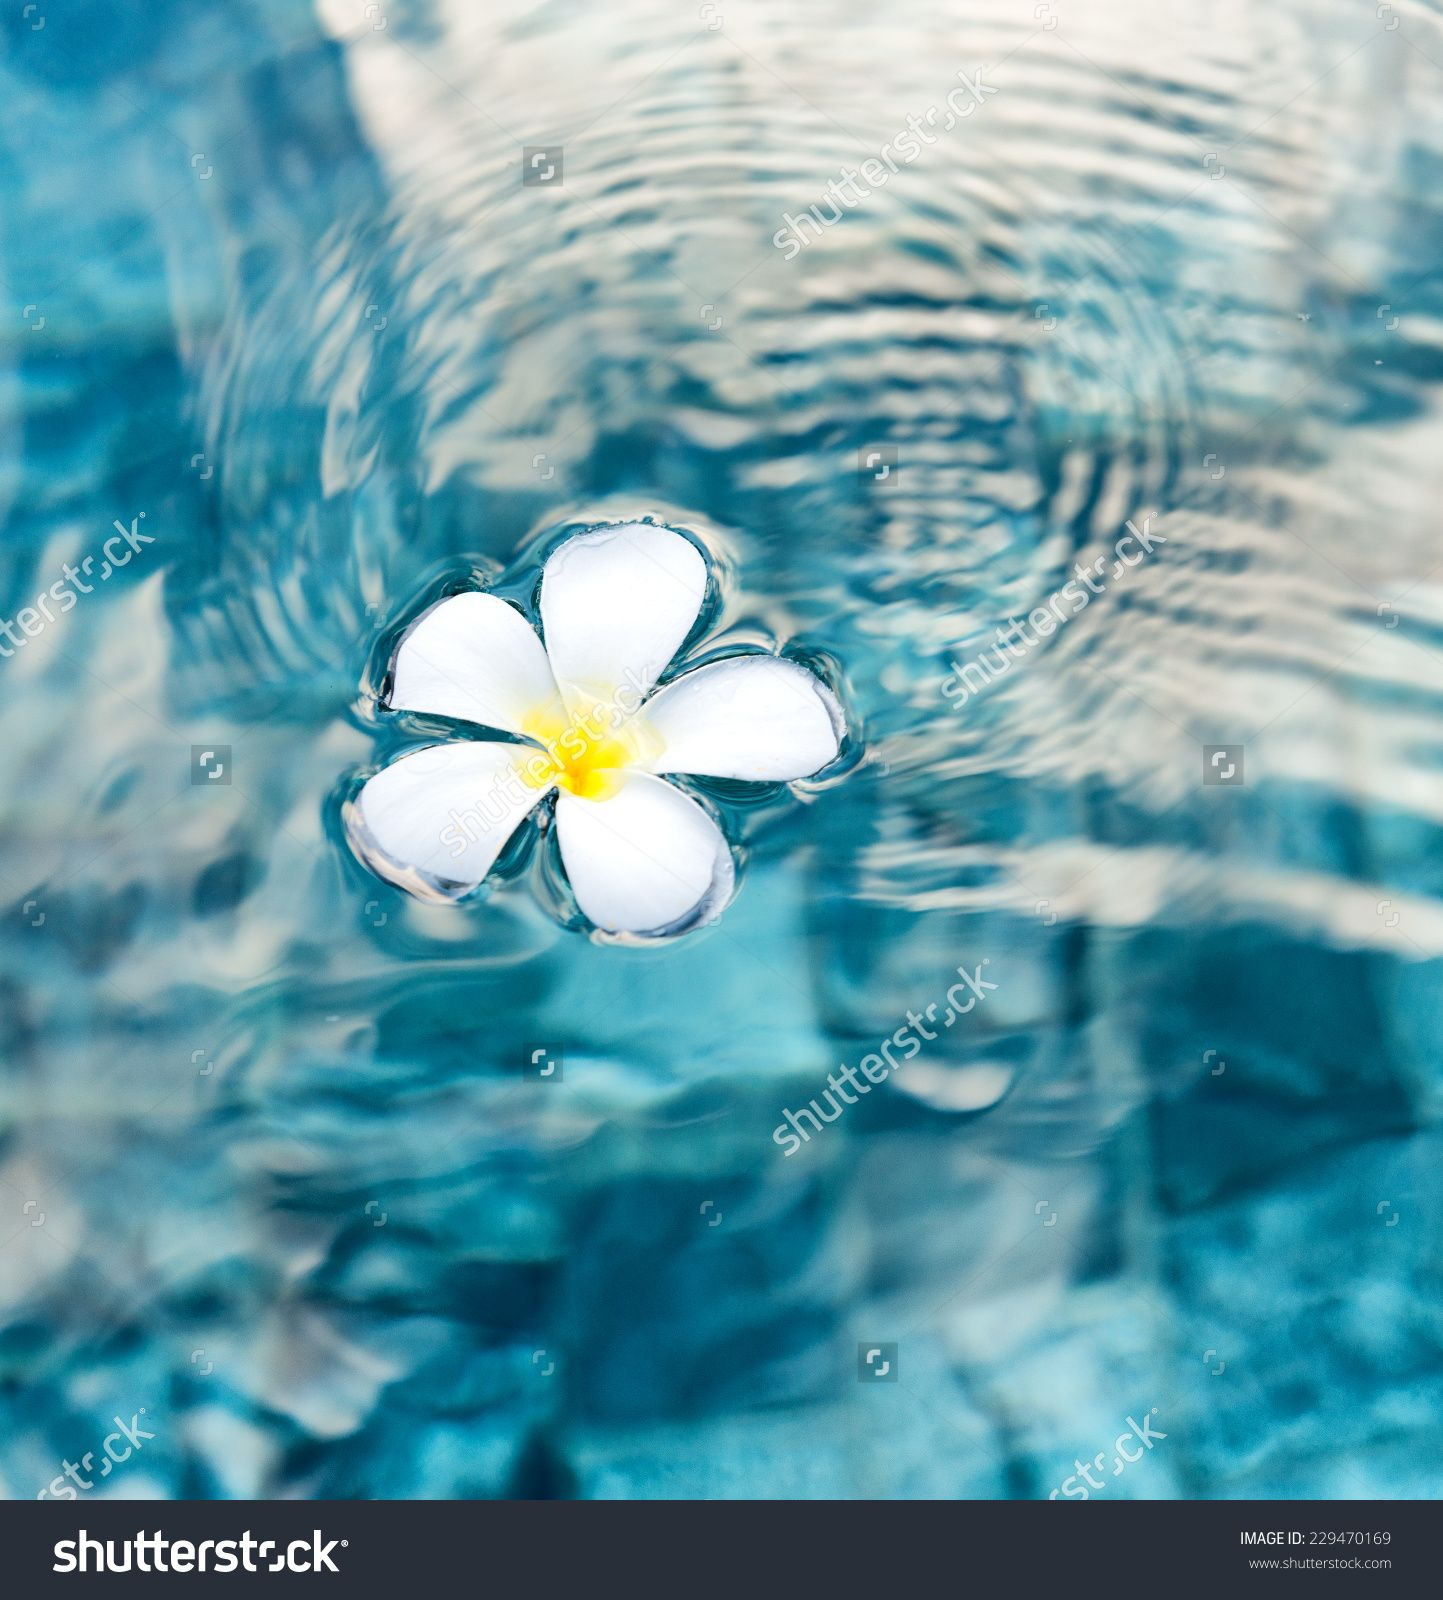 Picture This Photography And Graphics: Peaceful Stock Photos, Images, & Pictures